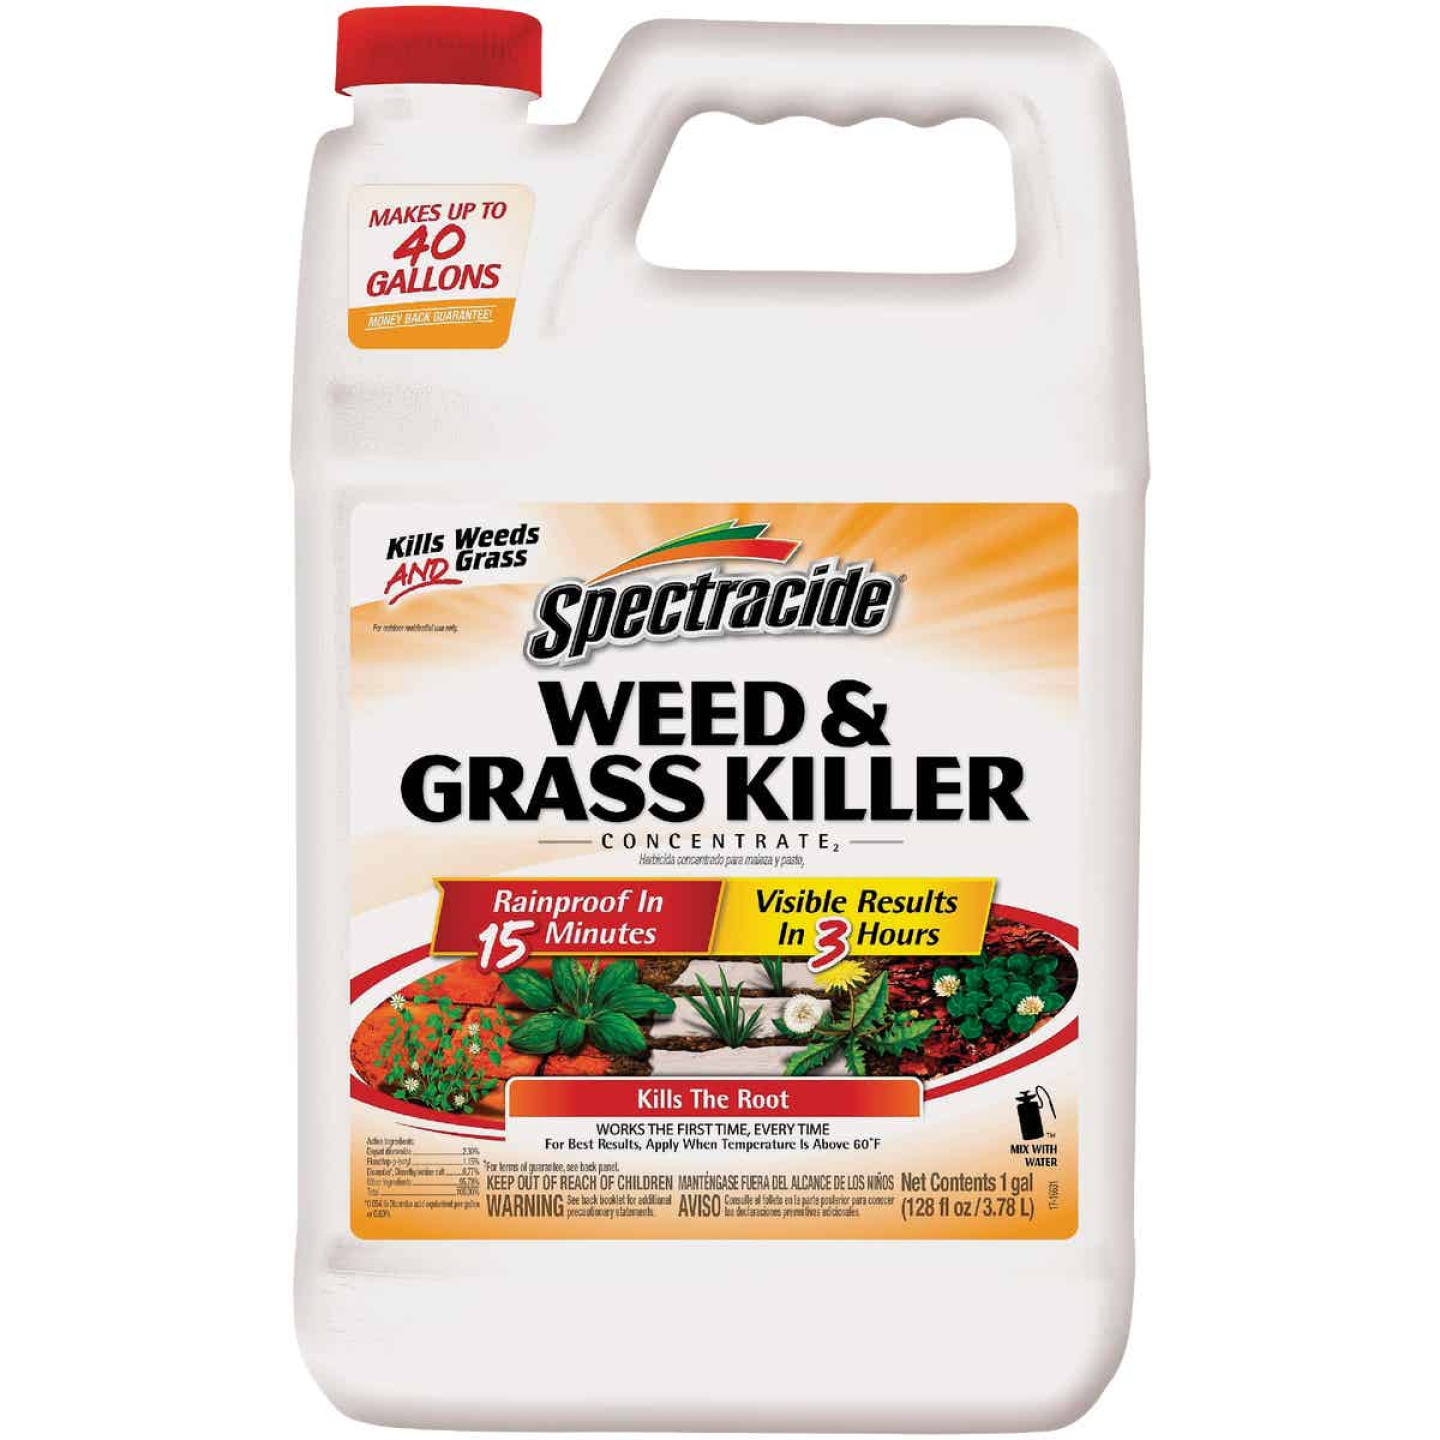 Spectracide 1 Gal. Concentrate Weed & Grass Killer Image 1